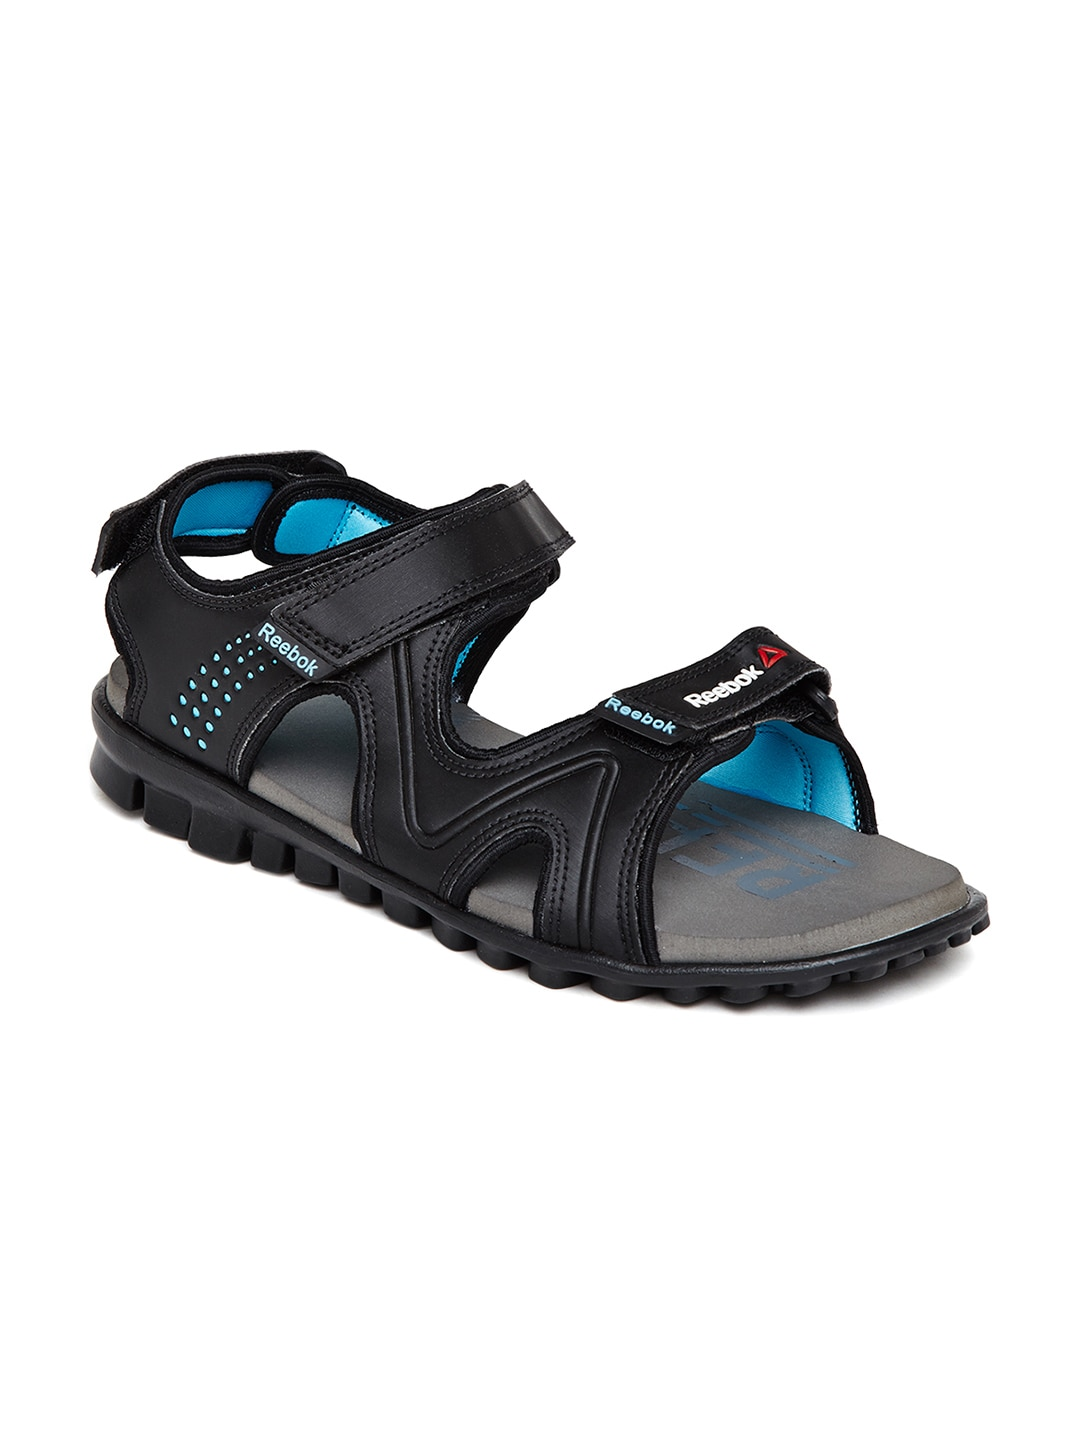 bcc00764d Reebok bd3535 Women Black Reeflex Sports Sandals- Price in India. reebok- style code- bd3535